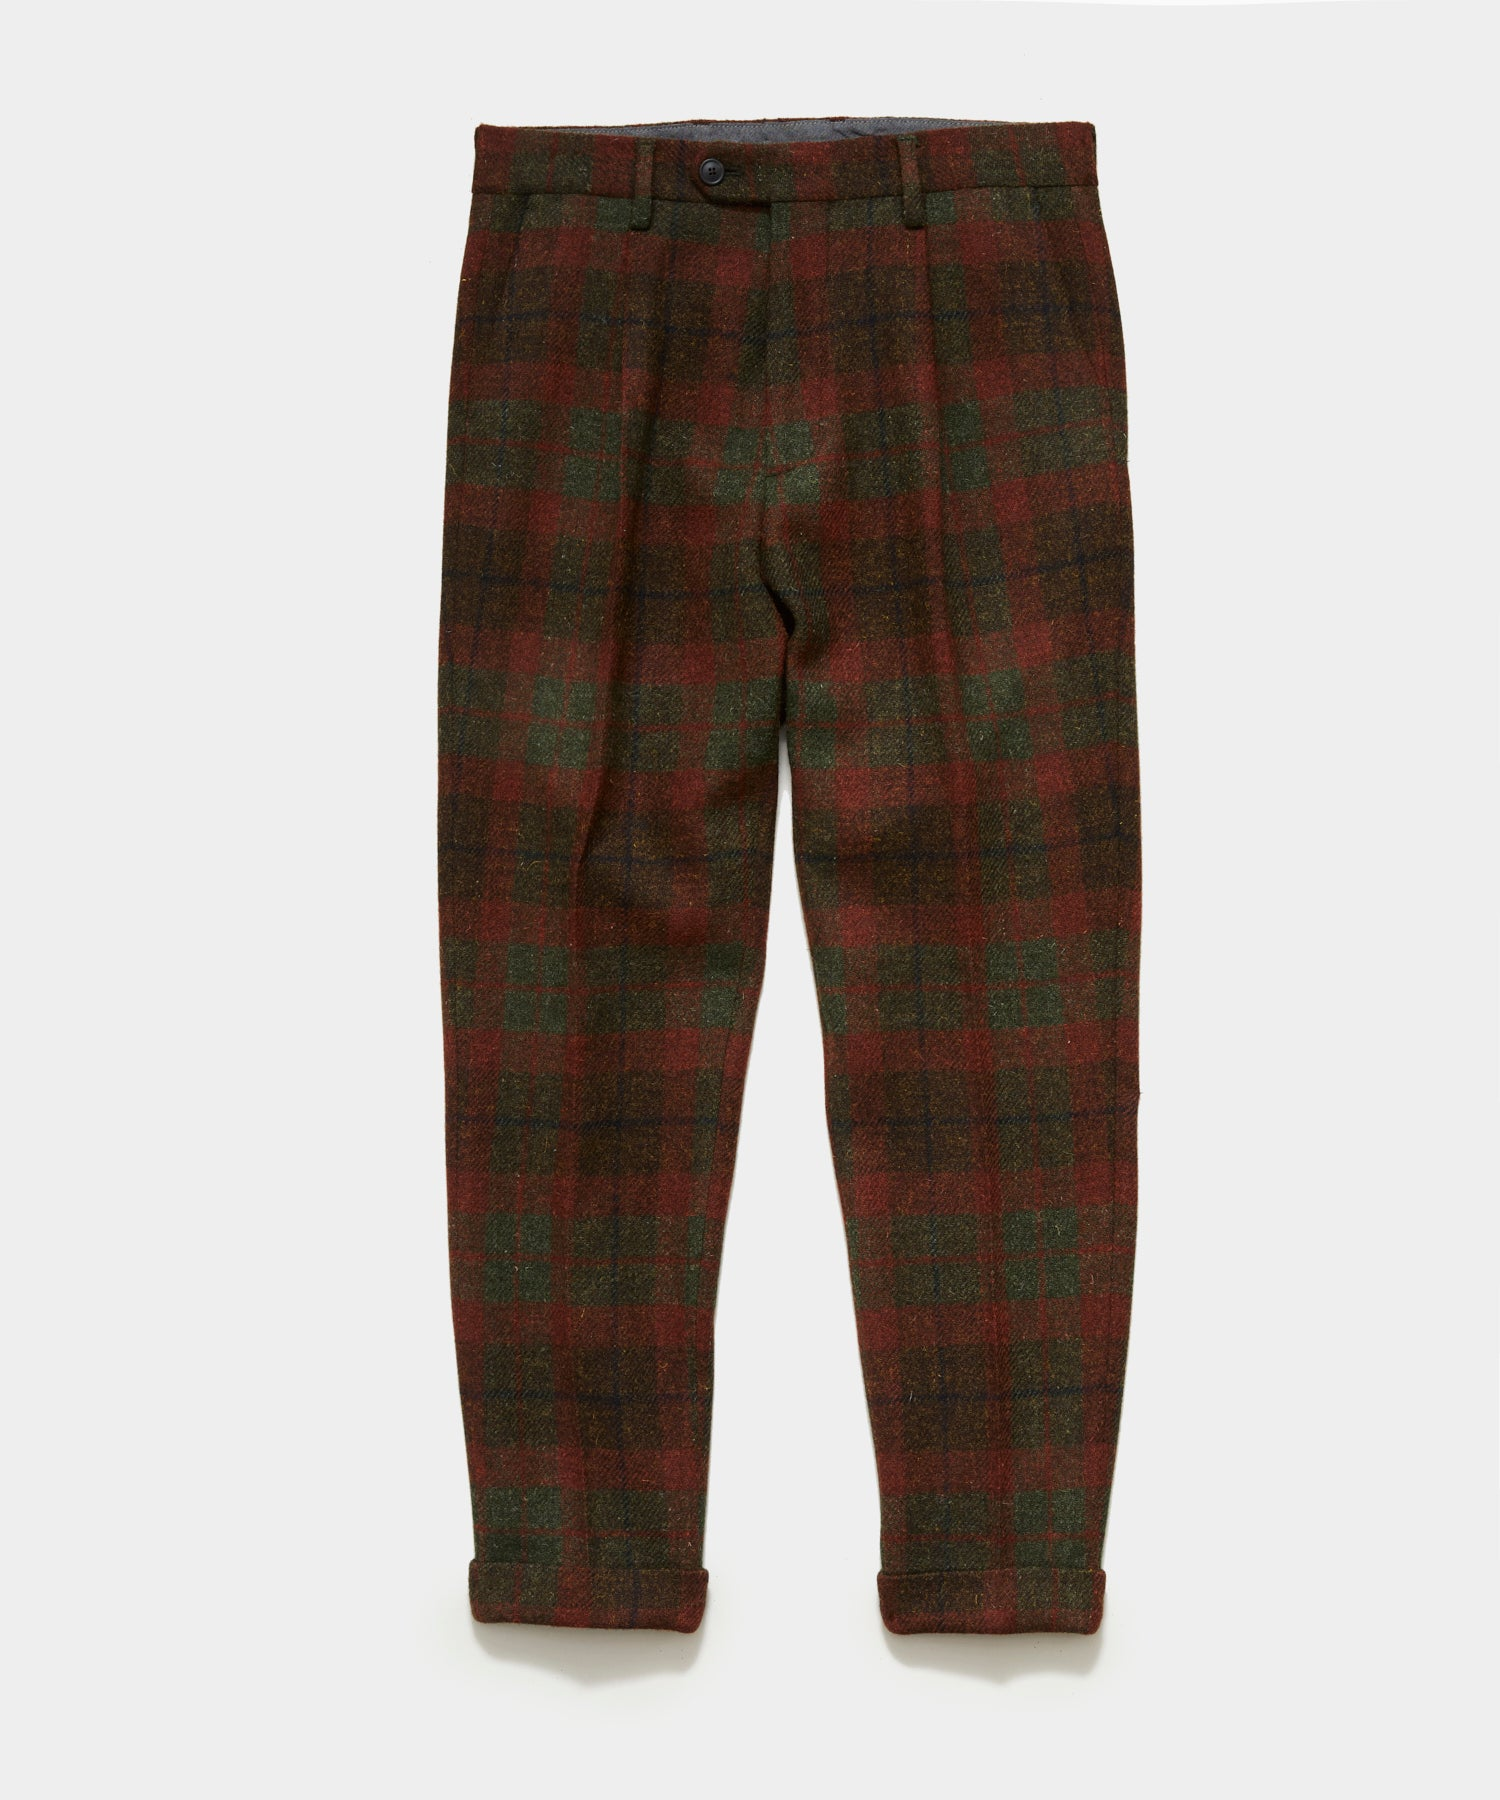 Harris Tweed Wool Pleated Pant in Brown Plaid